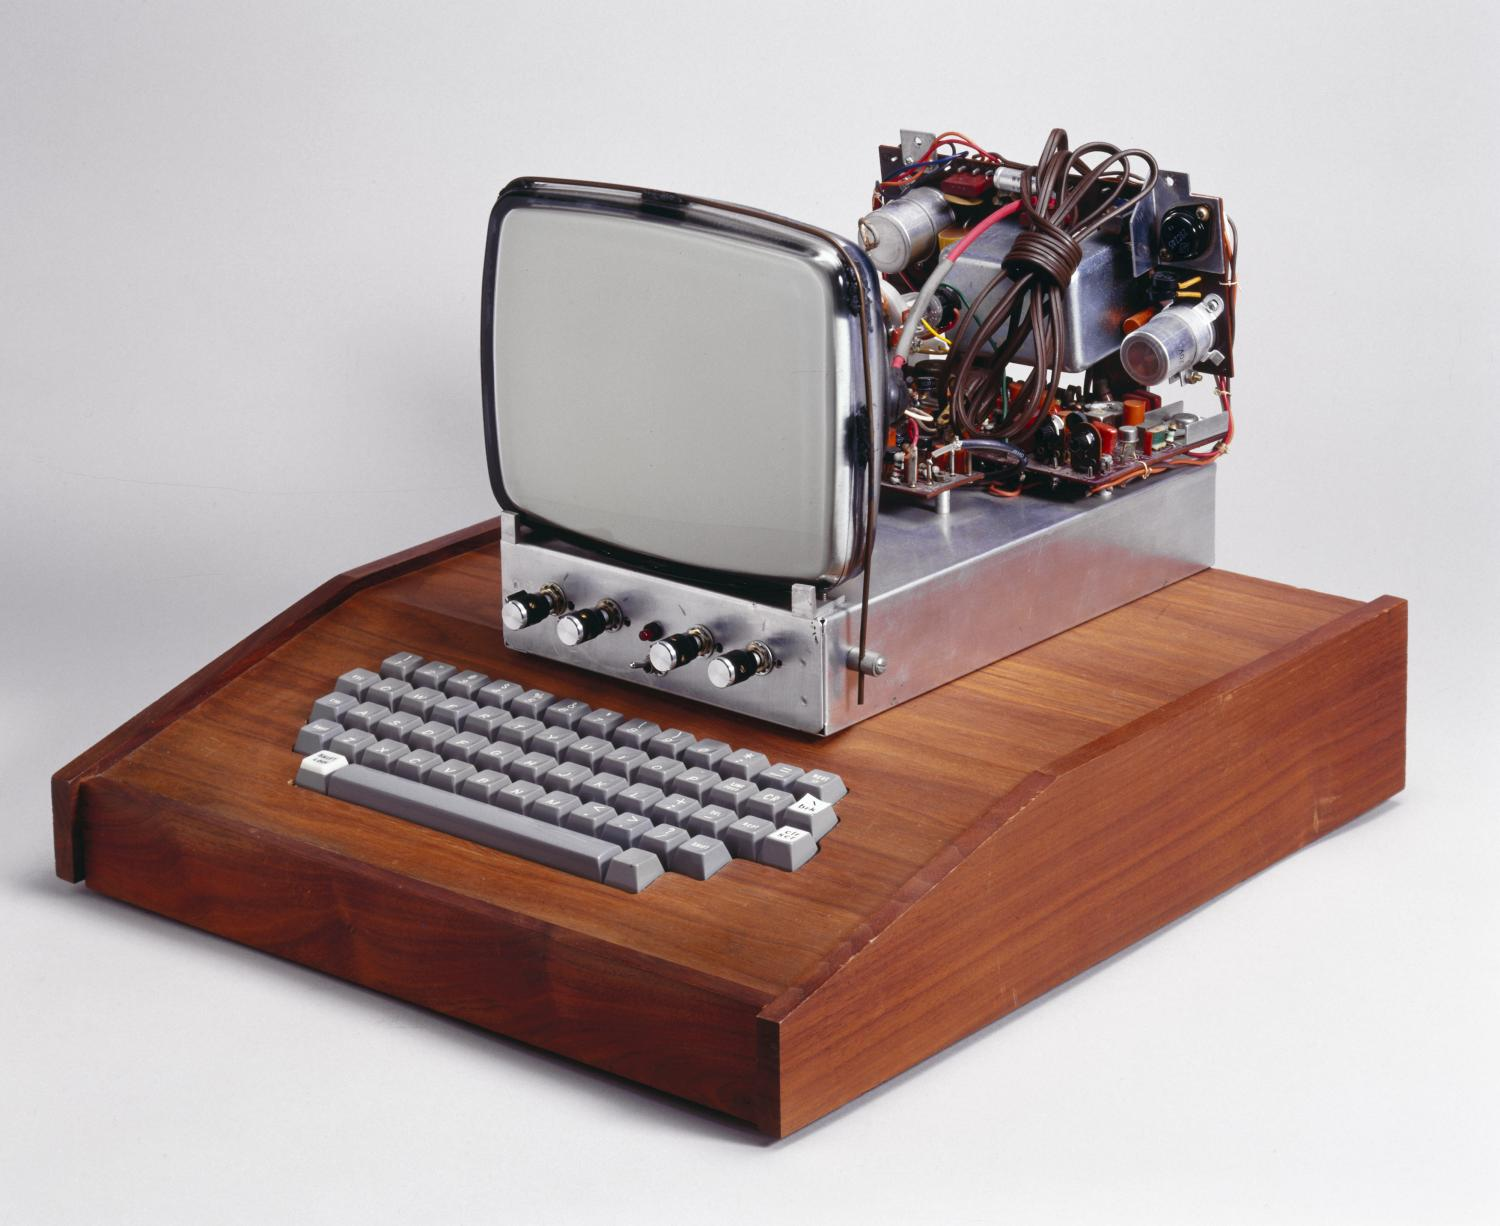 This was the first computer made by Apple, which became one of the fastest growing companies in history